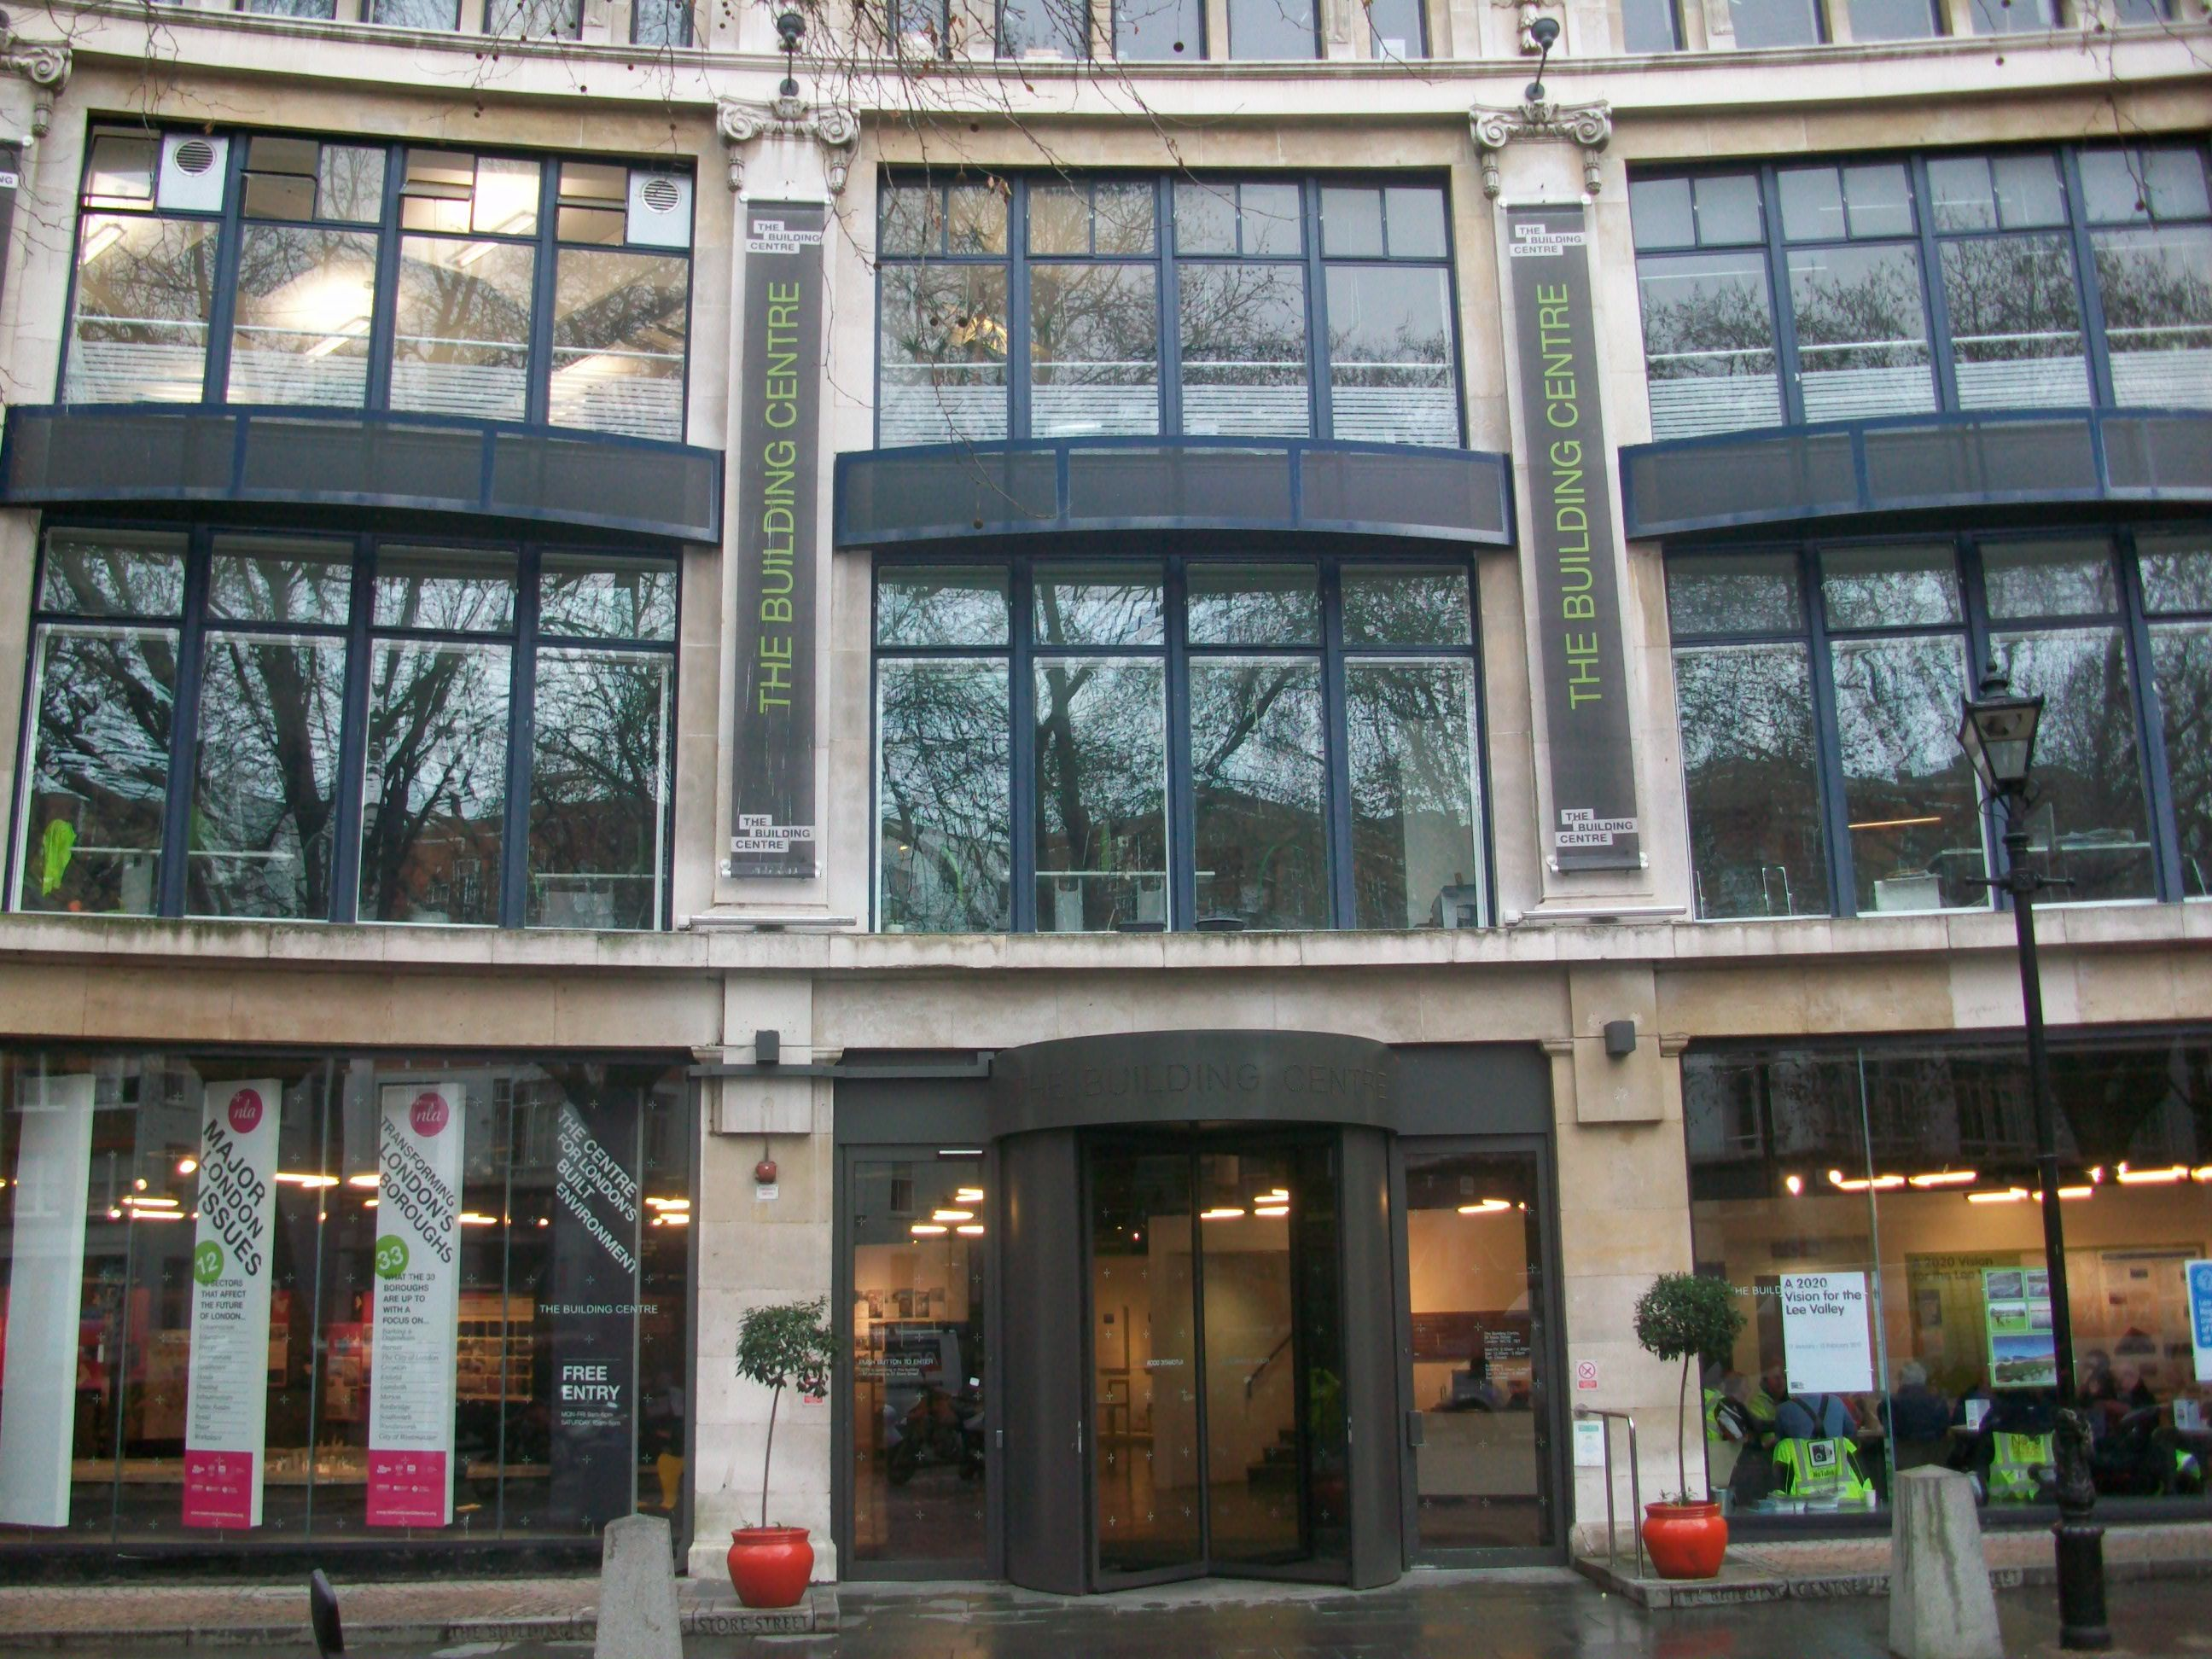 The Building Centre on Store Street will host the world's first awards for social media in the built environment.